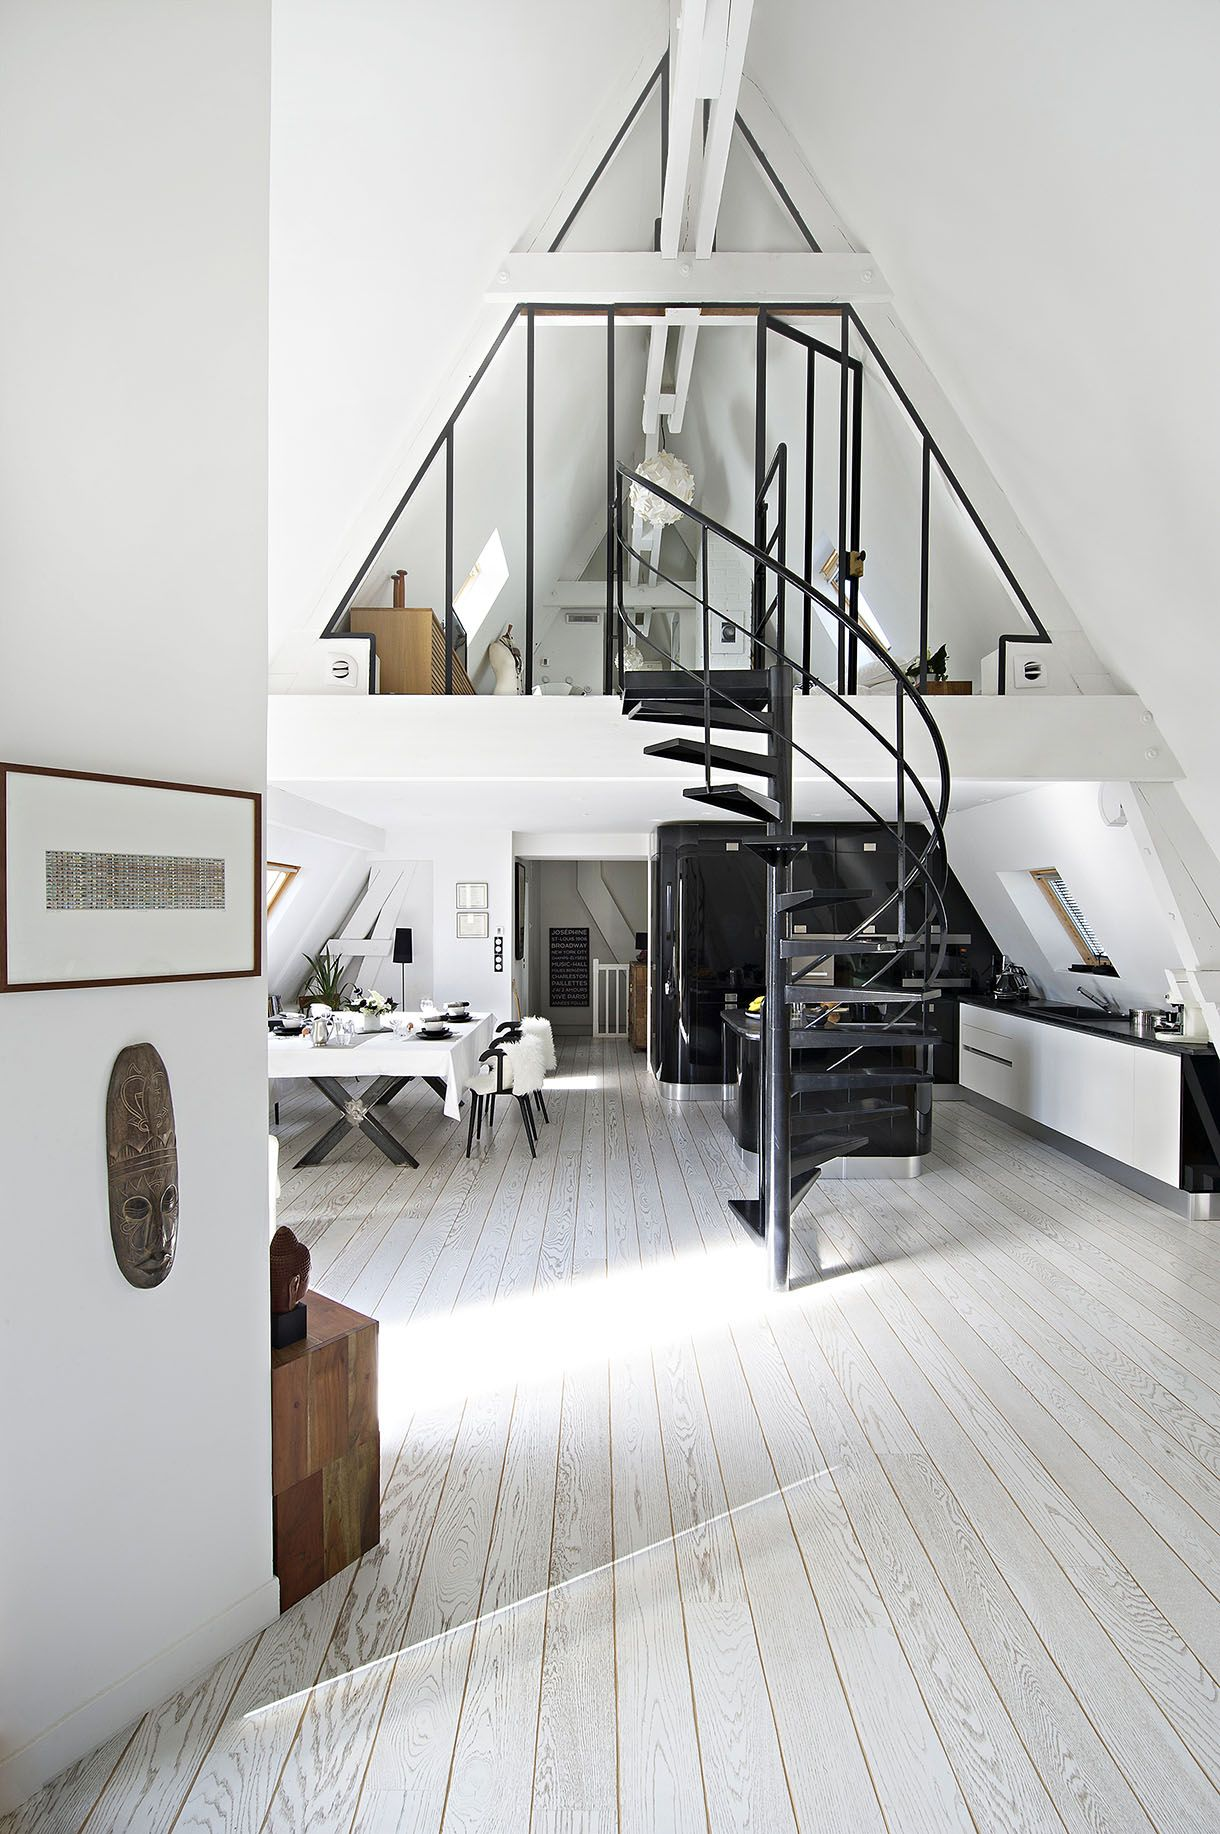 Upstairs loft bedroom ideas  Imgur Post  Imgur  Good ideas  Pinterest  Upstairs loft Loft